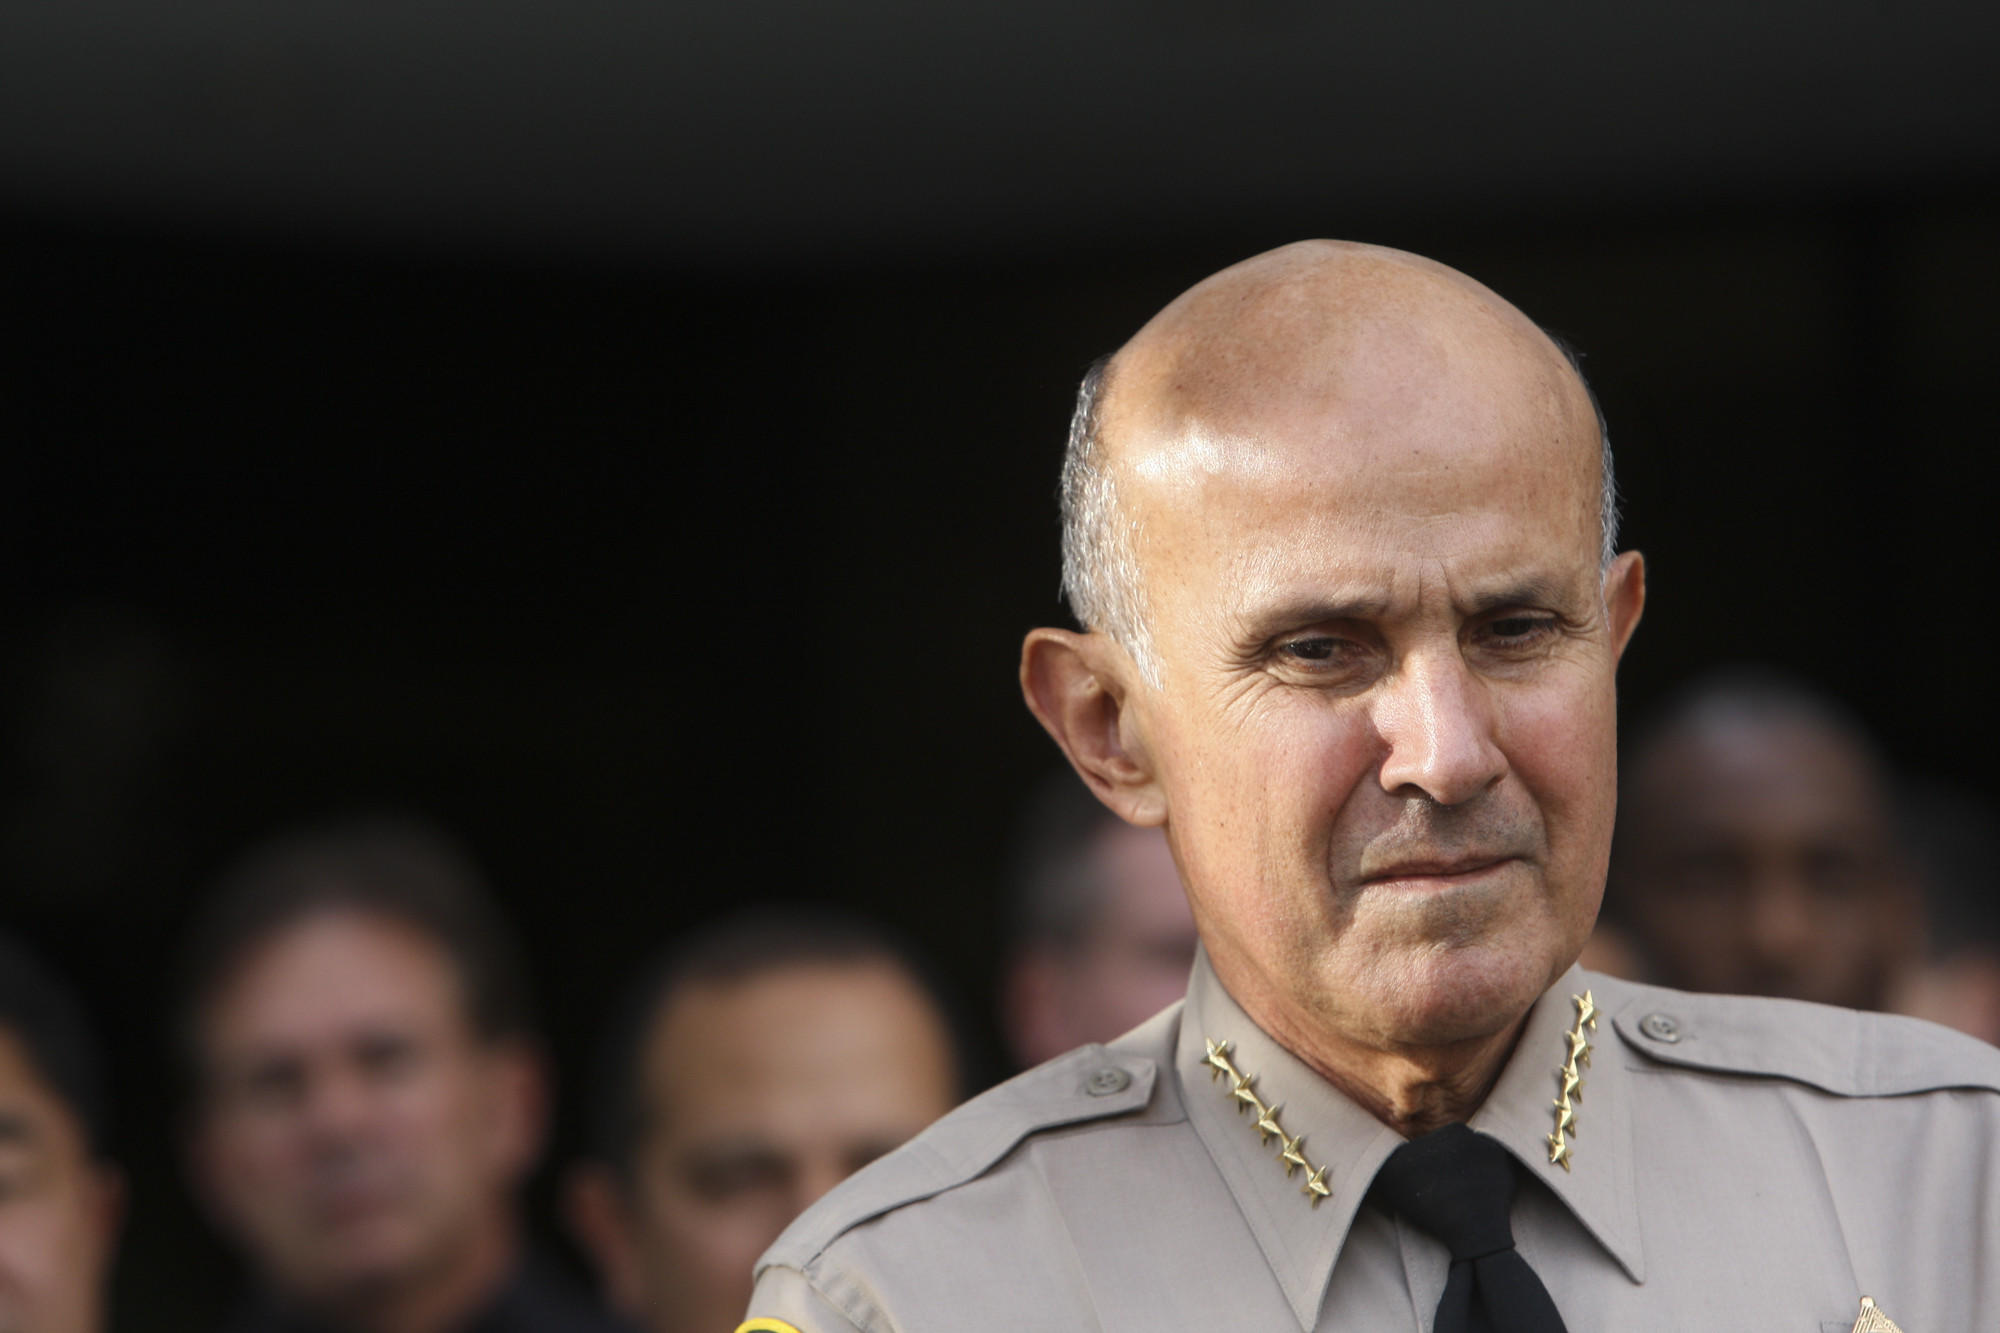 File Photo: Sheriff Lee Baca speaks during a toy drive outside of sheriff's headquarters building in Monterey Park on Monday, December 16, 2013. The drive was held by the Los Angeles Country Sheriff's Department and the Fred Jordan Mission. Baca announced on Tuesday, Jan. 7, 2014, that he would retire at the end of the month.